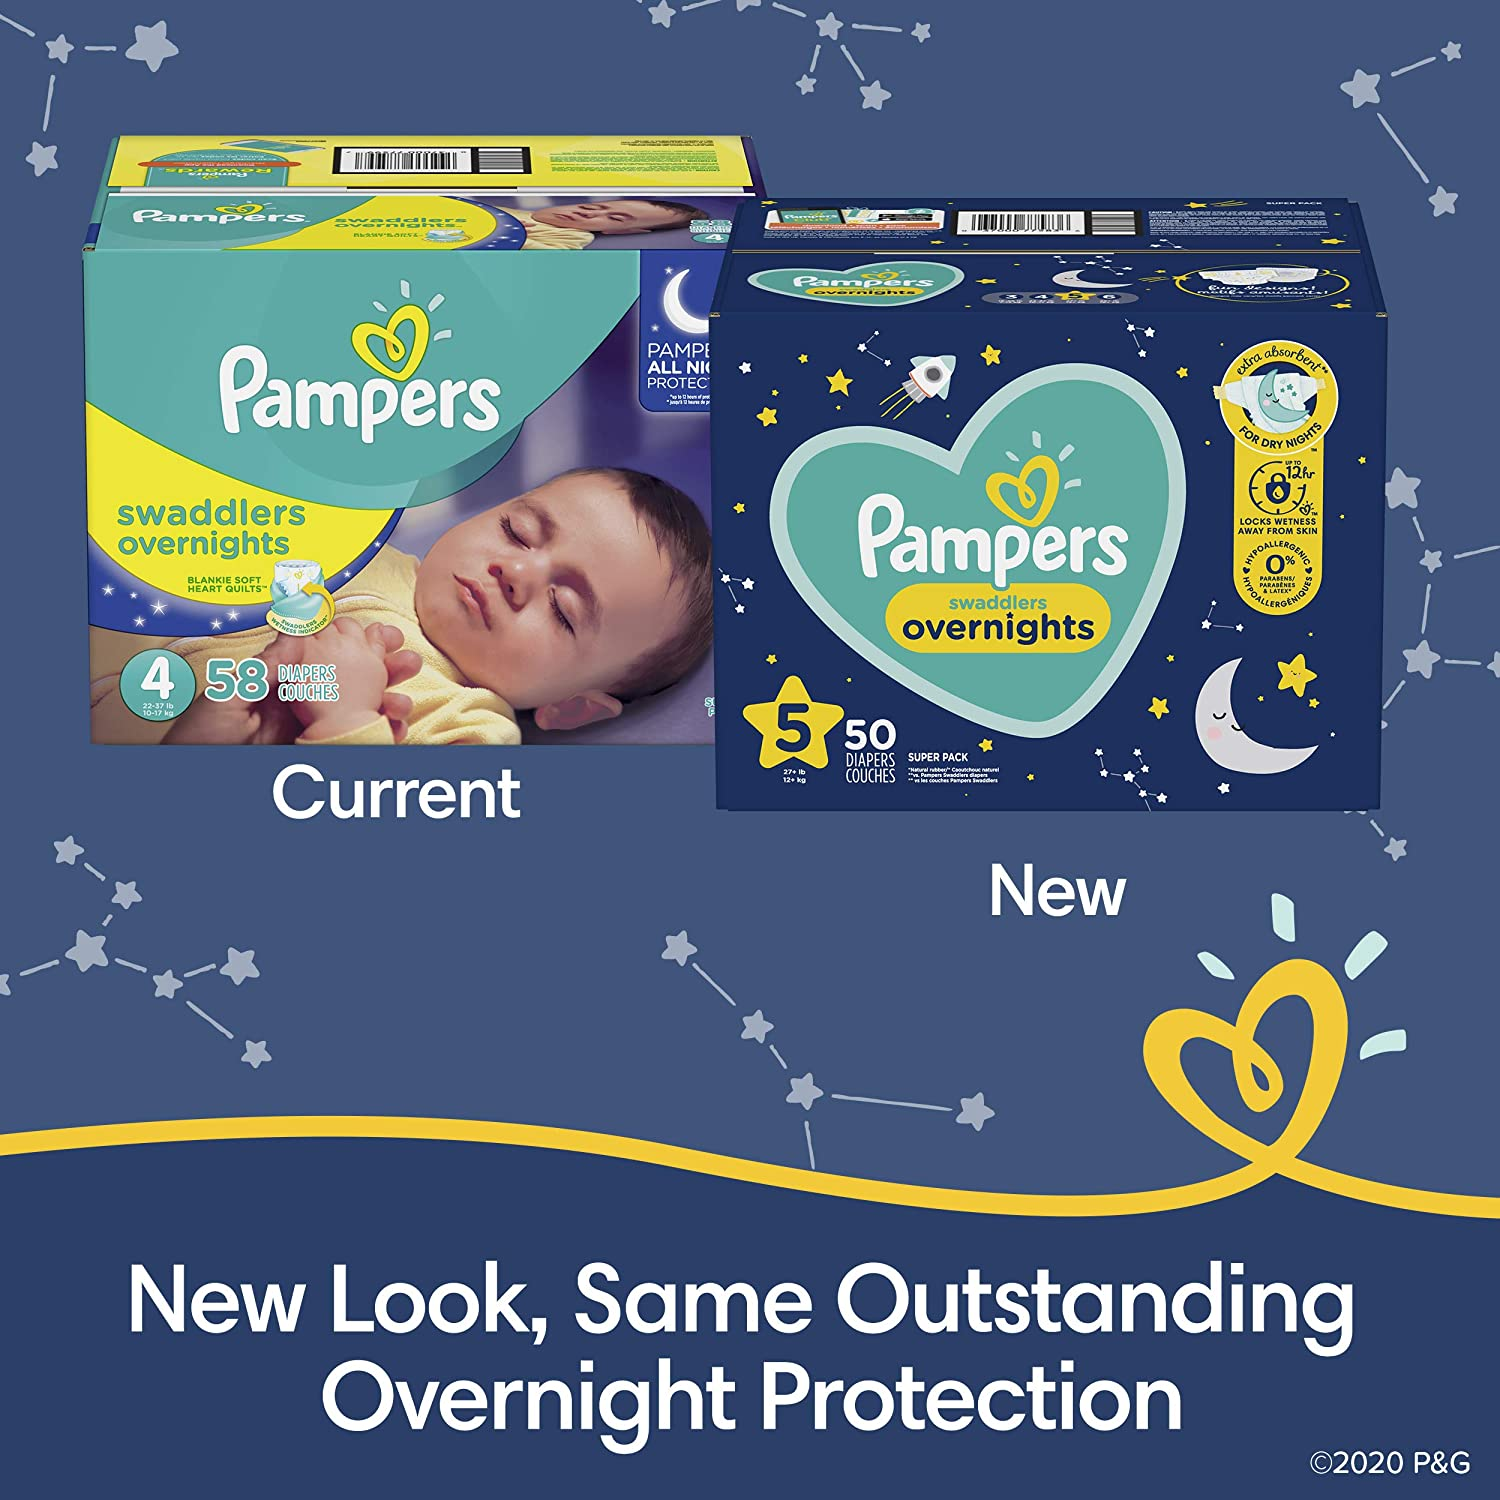 Pampers Overnight Swaddlers